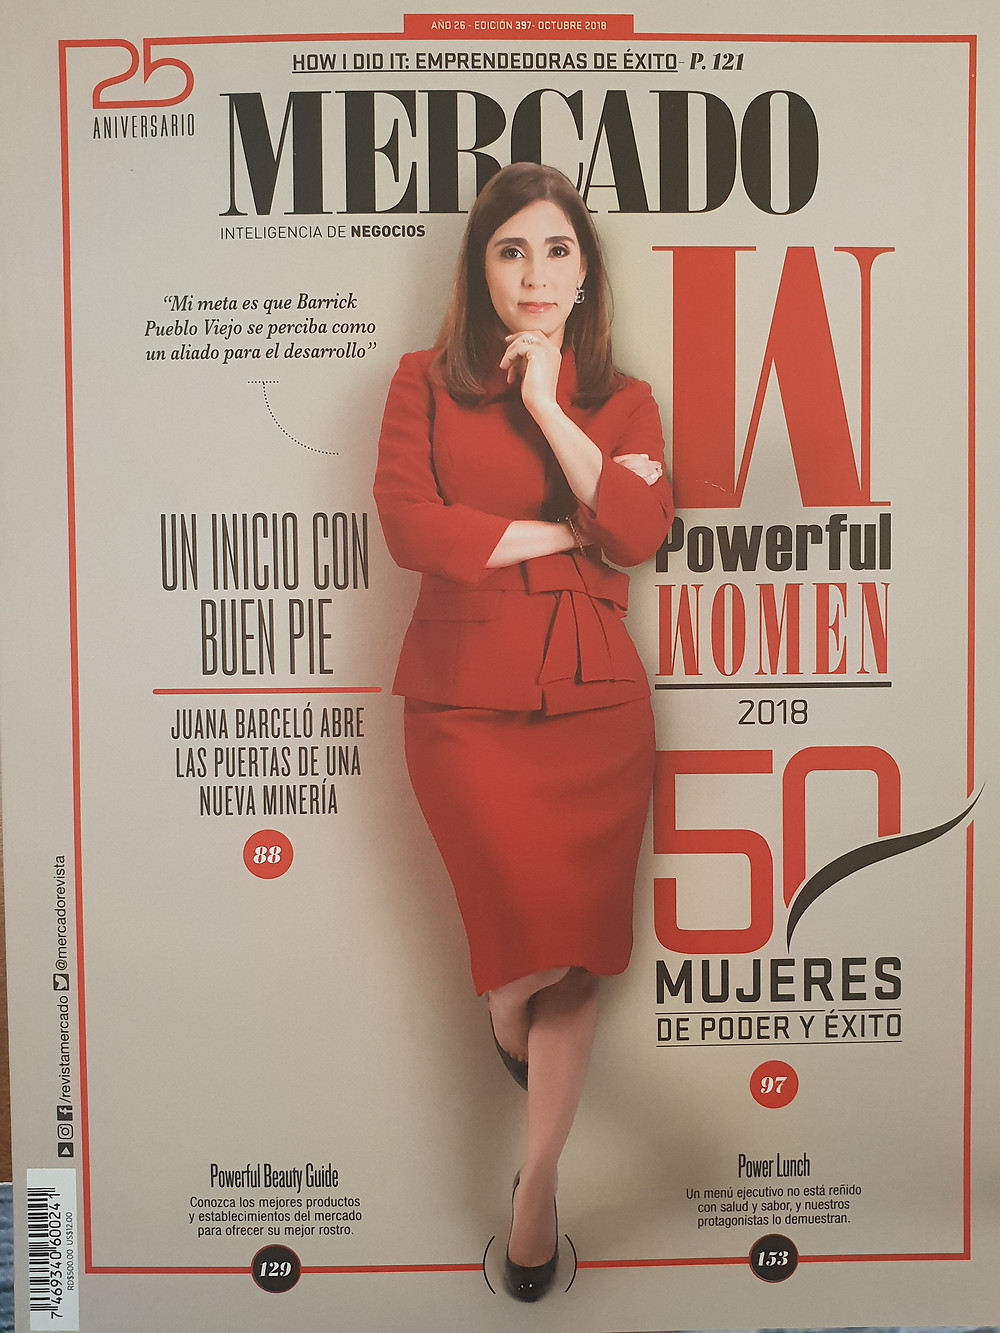 Find our article Most Powerful Women 2018, Revista Mercado,